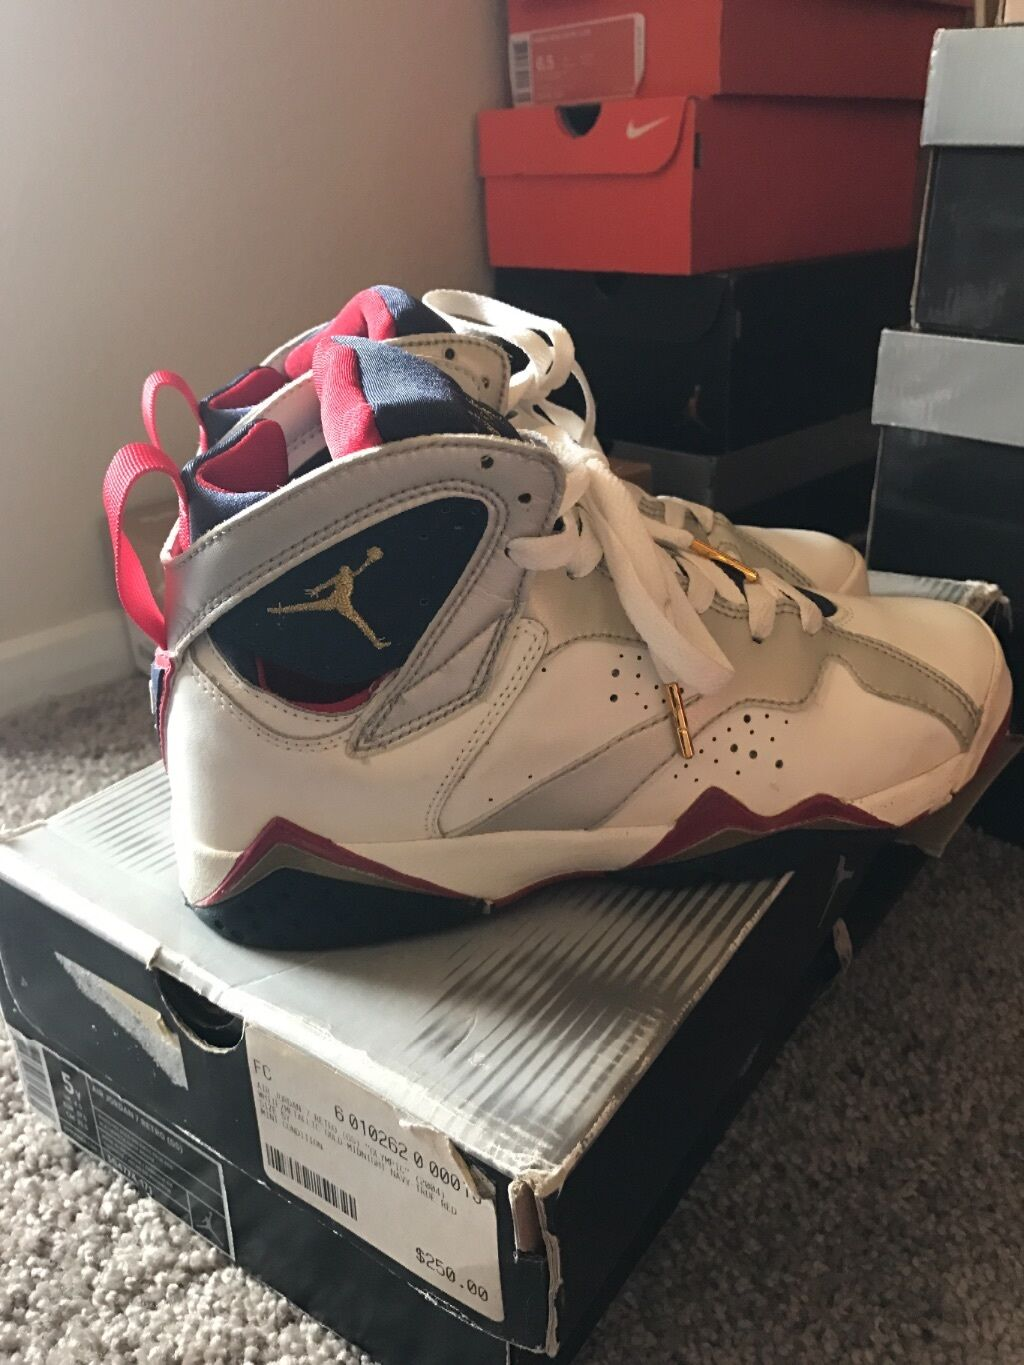 air jordan 7 olympic 2004 Price reduction best-selling model of the brand